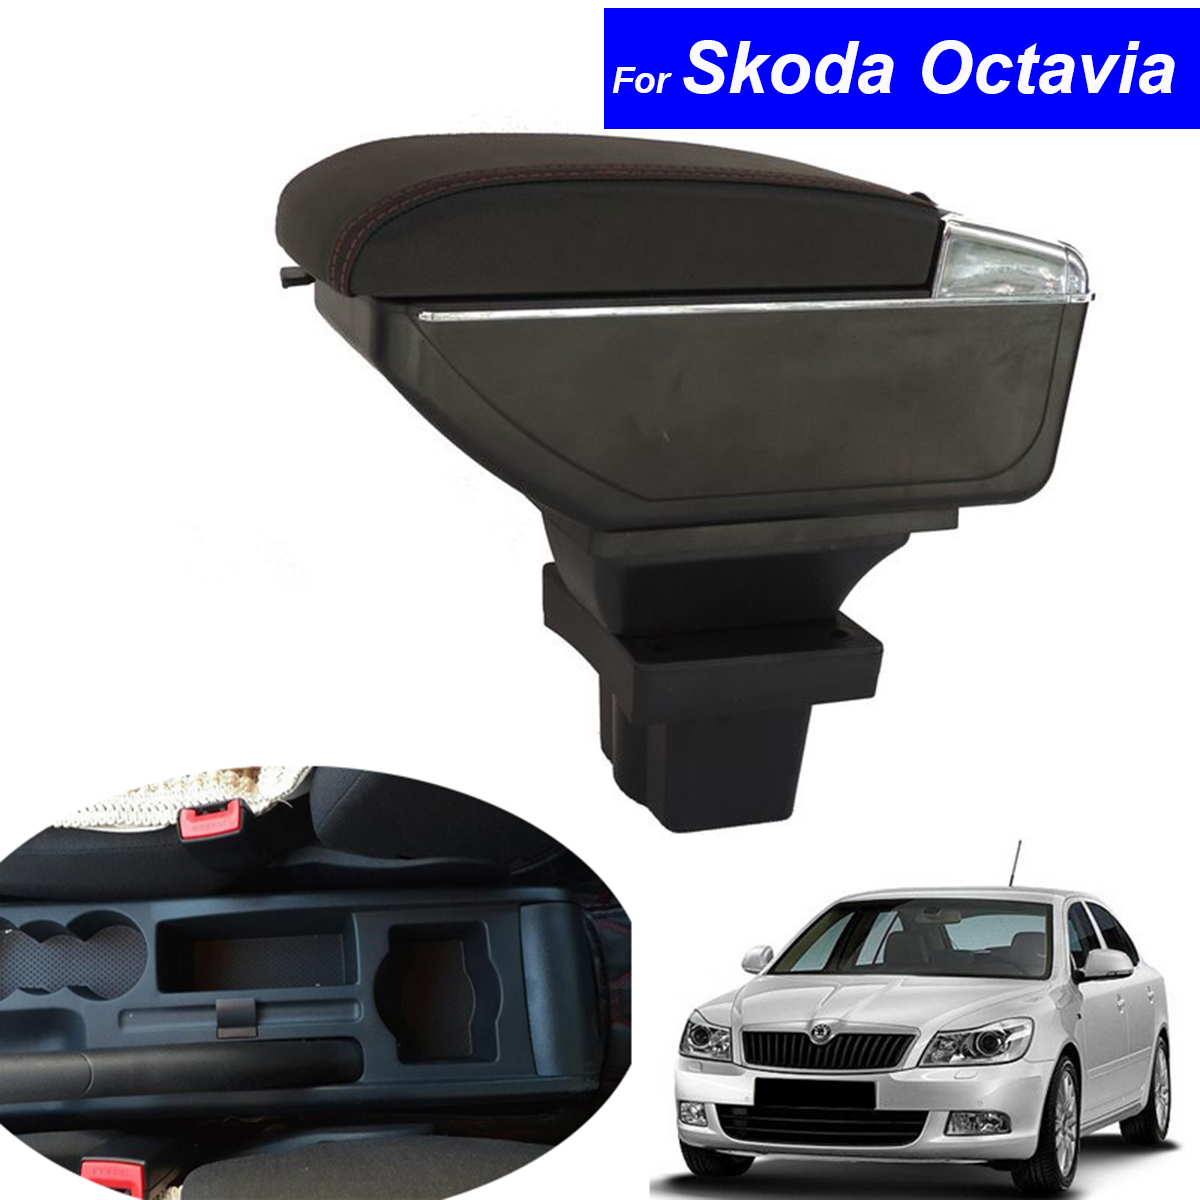 Leather Car Center Console Armrests Storage Box for Skoda Octavia 2009 2010 2011 2012 2013 2014 2015 2016 Free Shipping car usb sd aux adapter digital music changer mp3 converter for skoda octavia 2007 2011 fits select oem radios